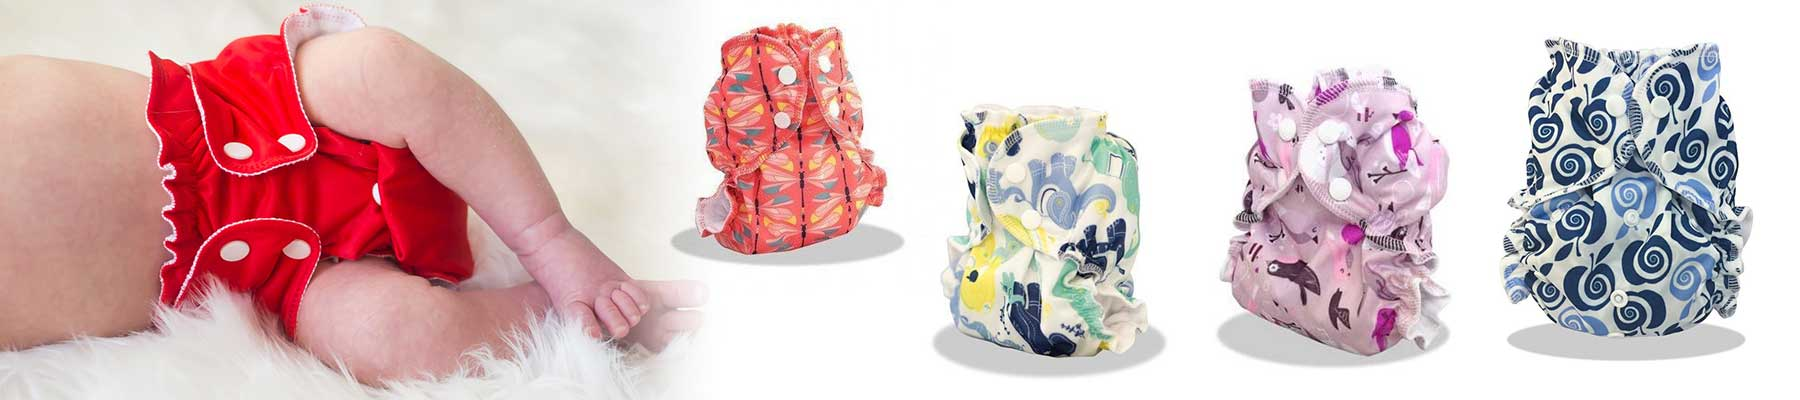 Cloth diapers for Newborns & Toddlers